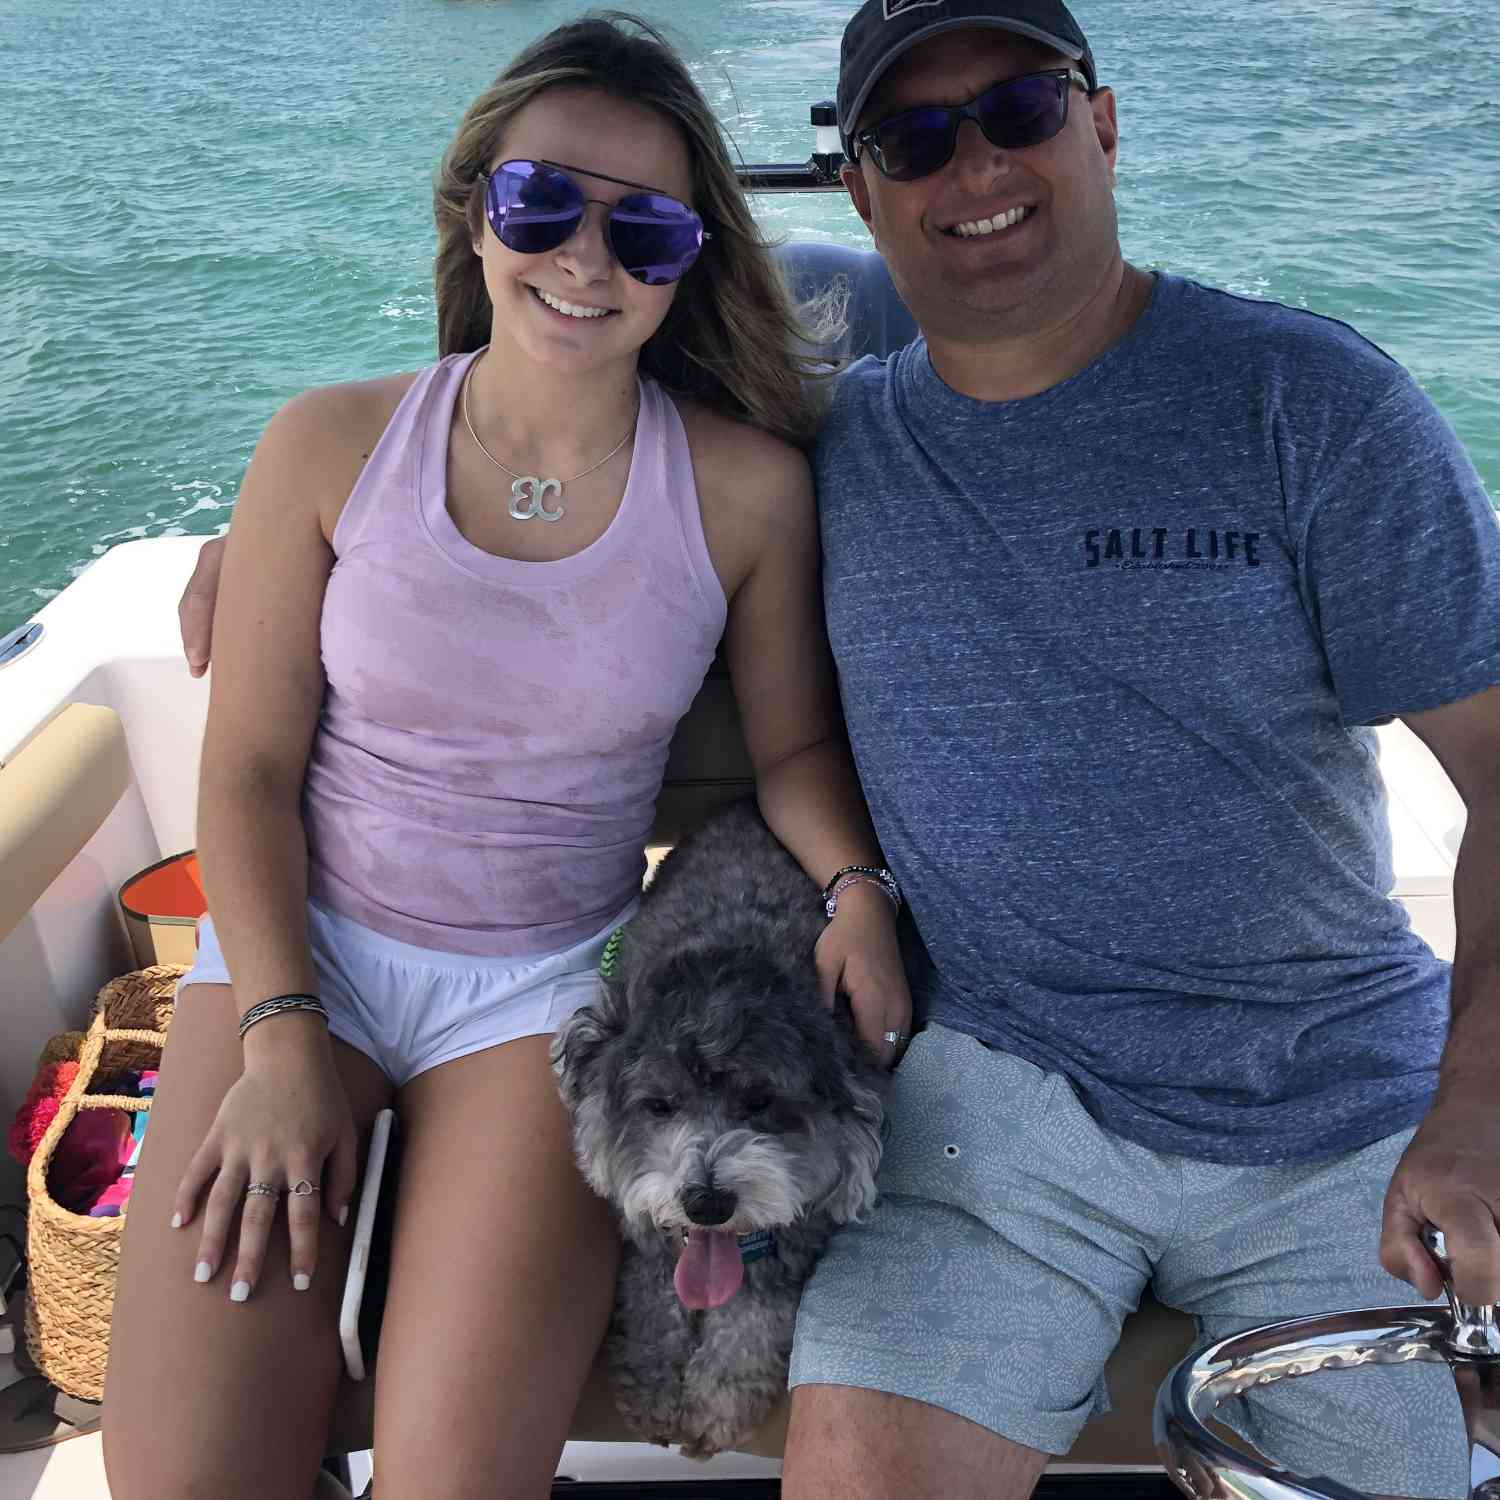 Title: Fathers Day Cruise - On board their Sportsman Open 232 Center Console - Location: Orange Breach, Al. Participating in the Photo Contest #SportsmanJuly2020